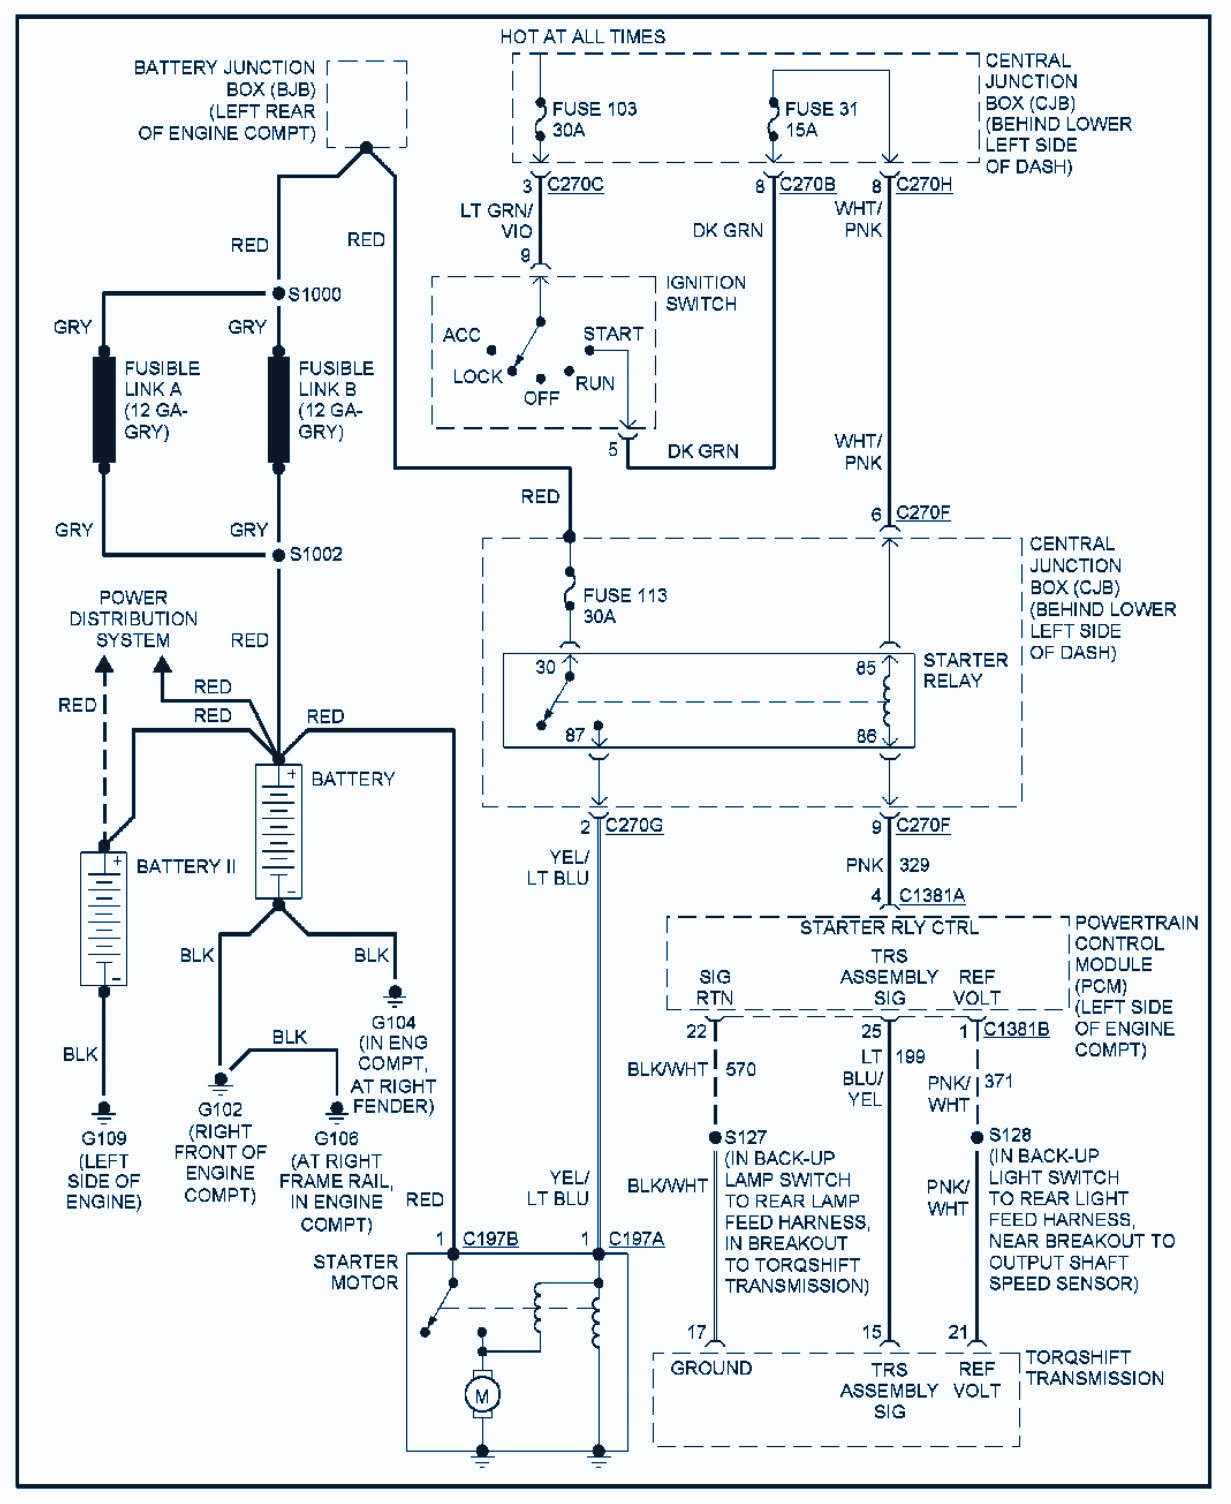 351 pcm wiring diagram 6 0 powerstroke injector diagram